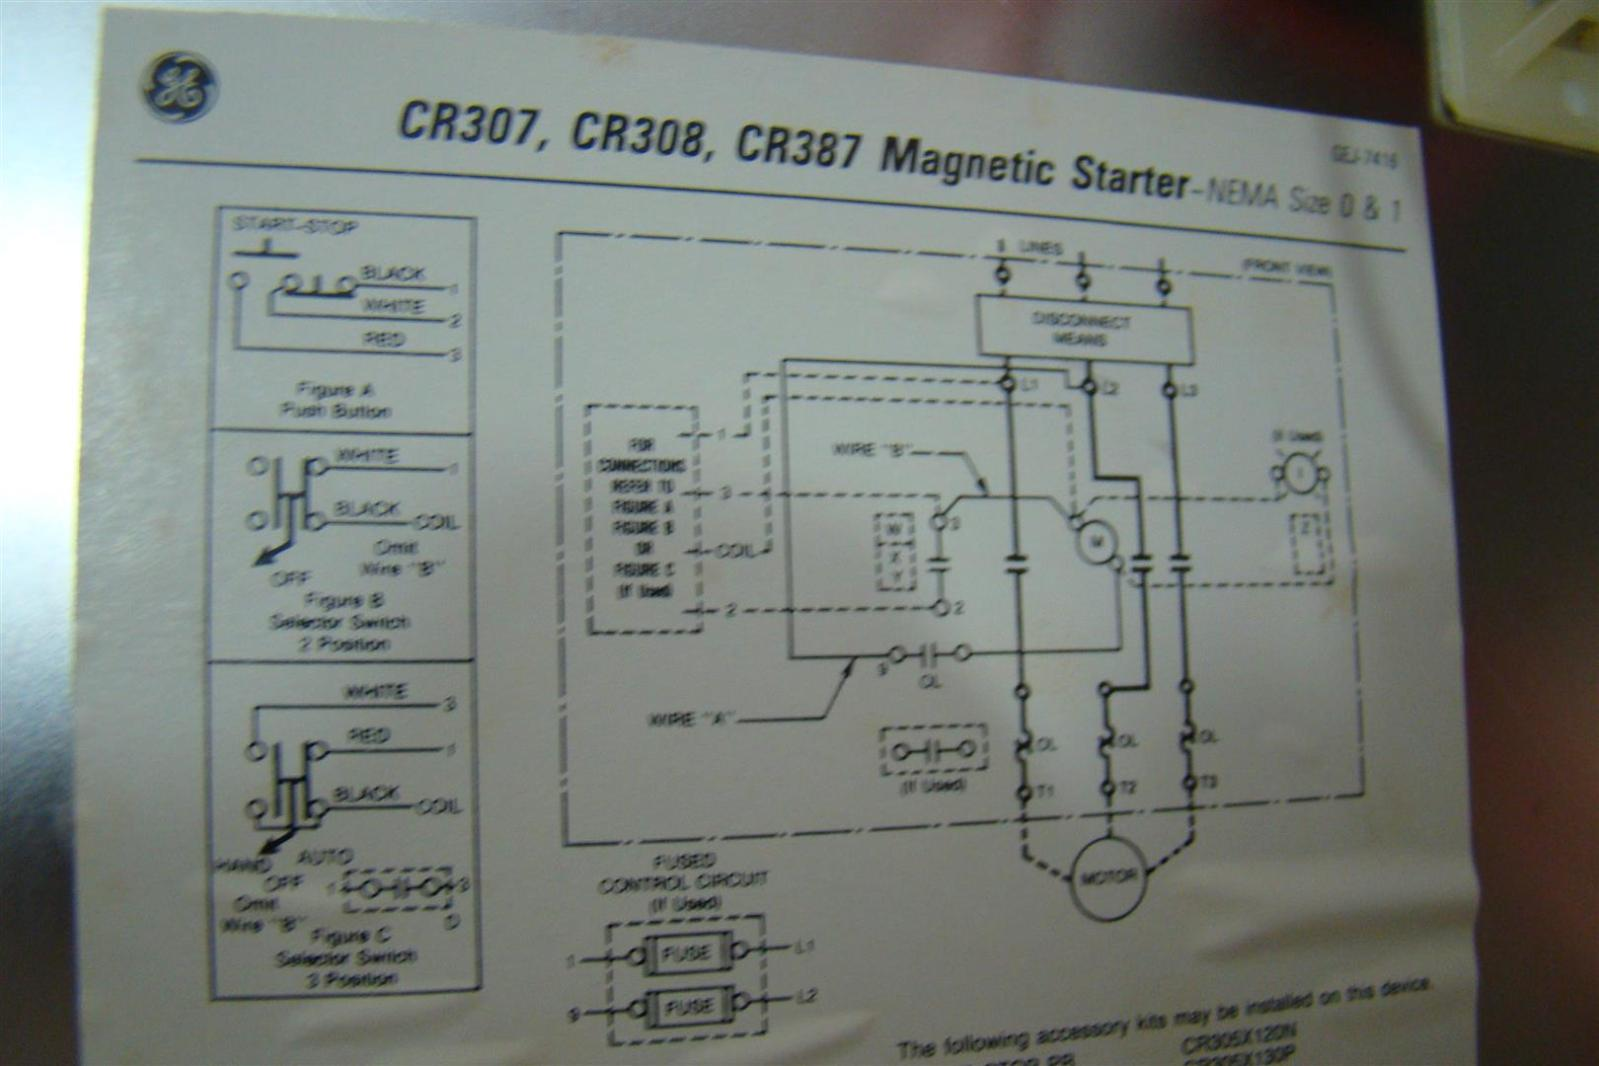 Modern Wiring Magnetic Starter Ensign Wiring Diagram Ideas